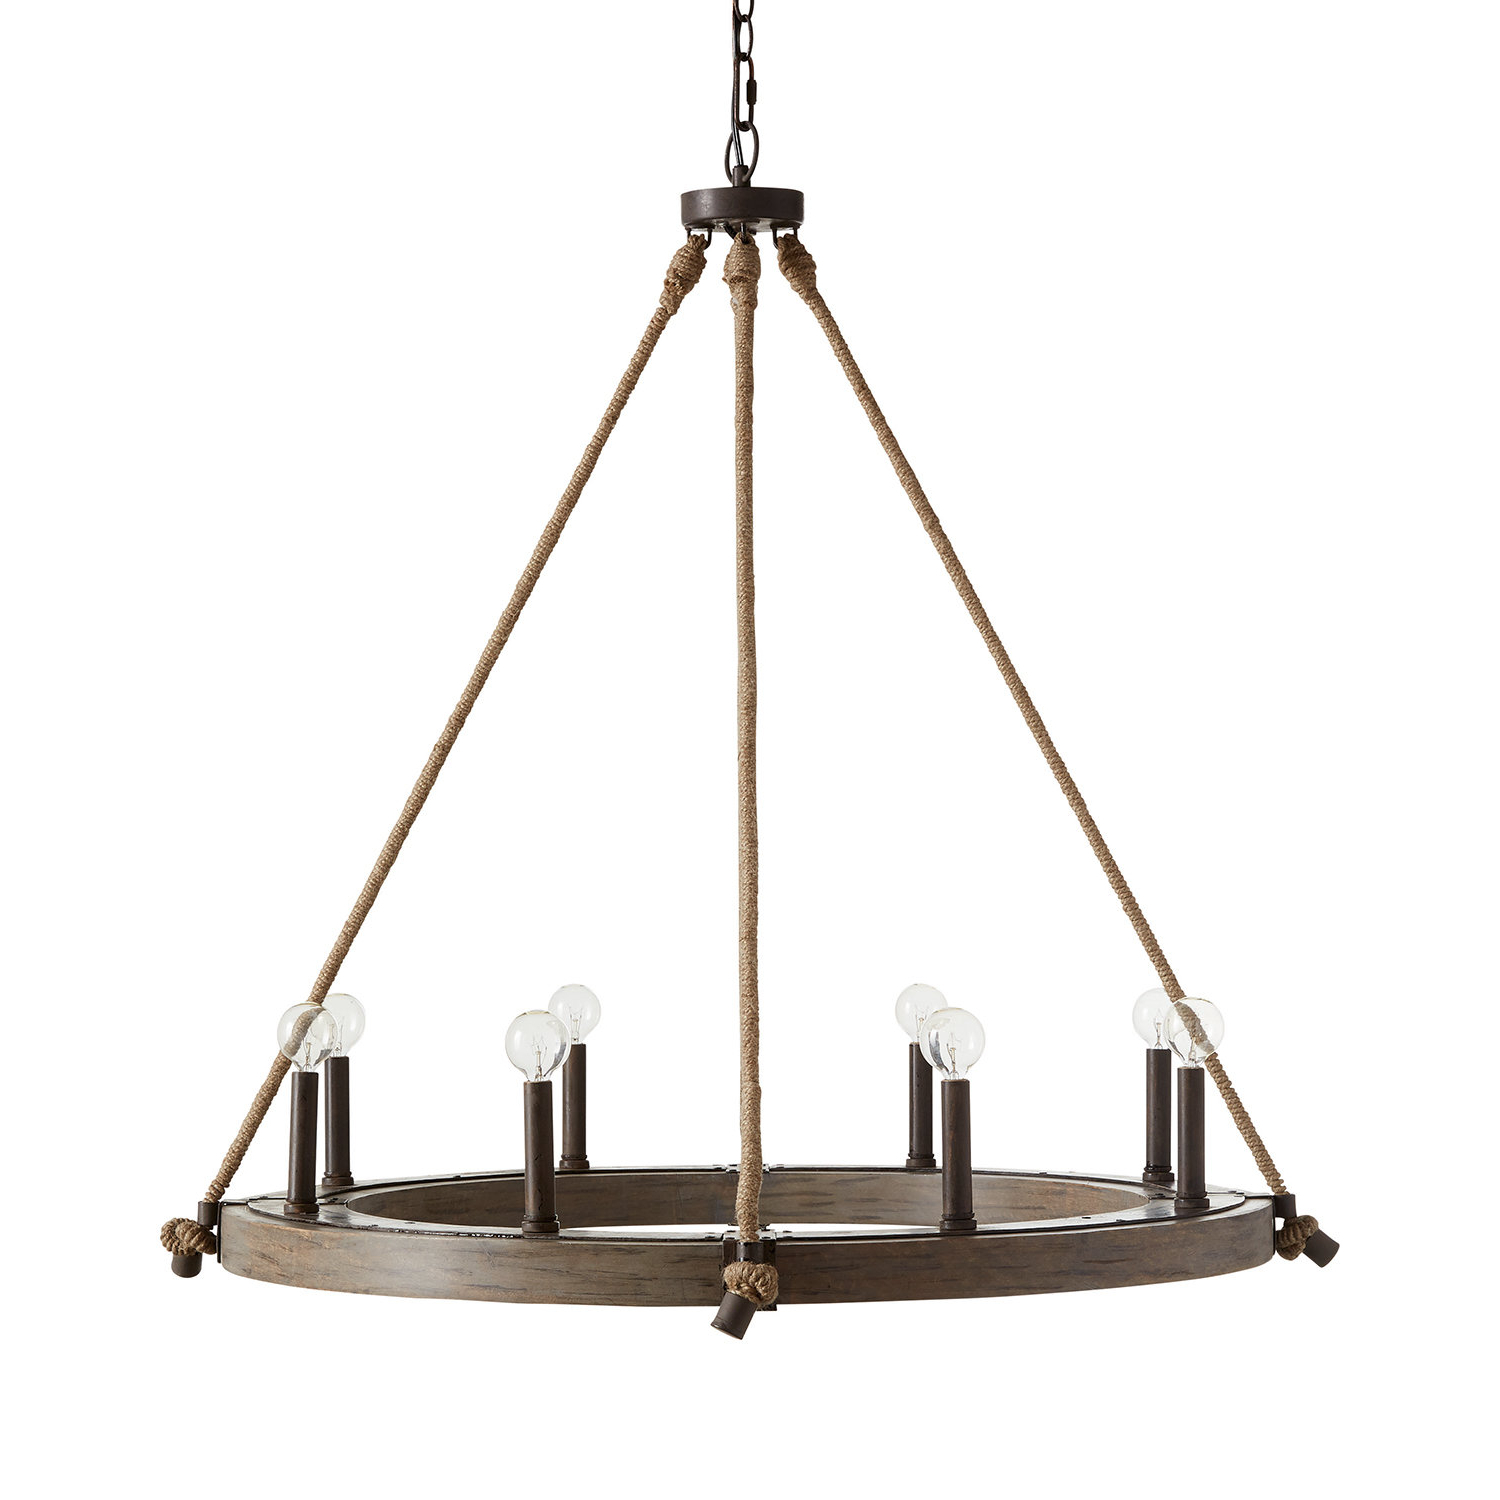 Verona 8-Light Wagon Wheel Chandelier for Trendy Shayla 12-Light Wagon Wheel Chandeliers